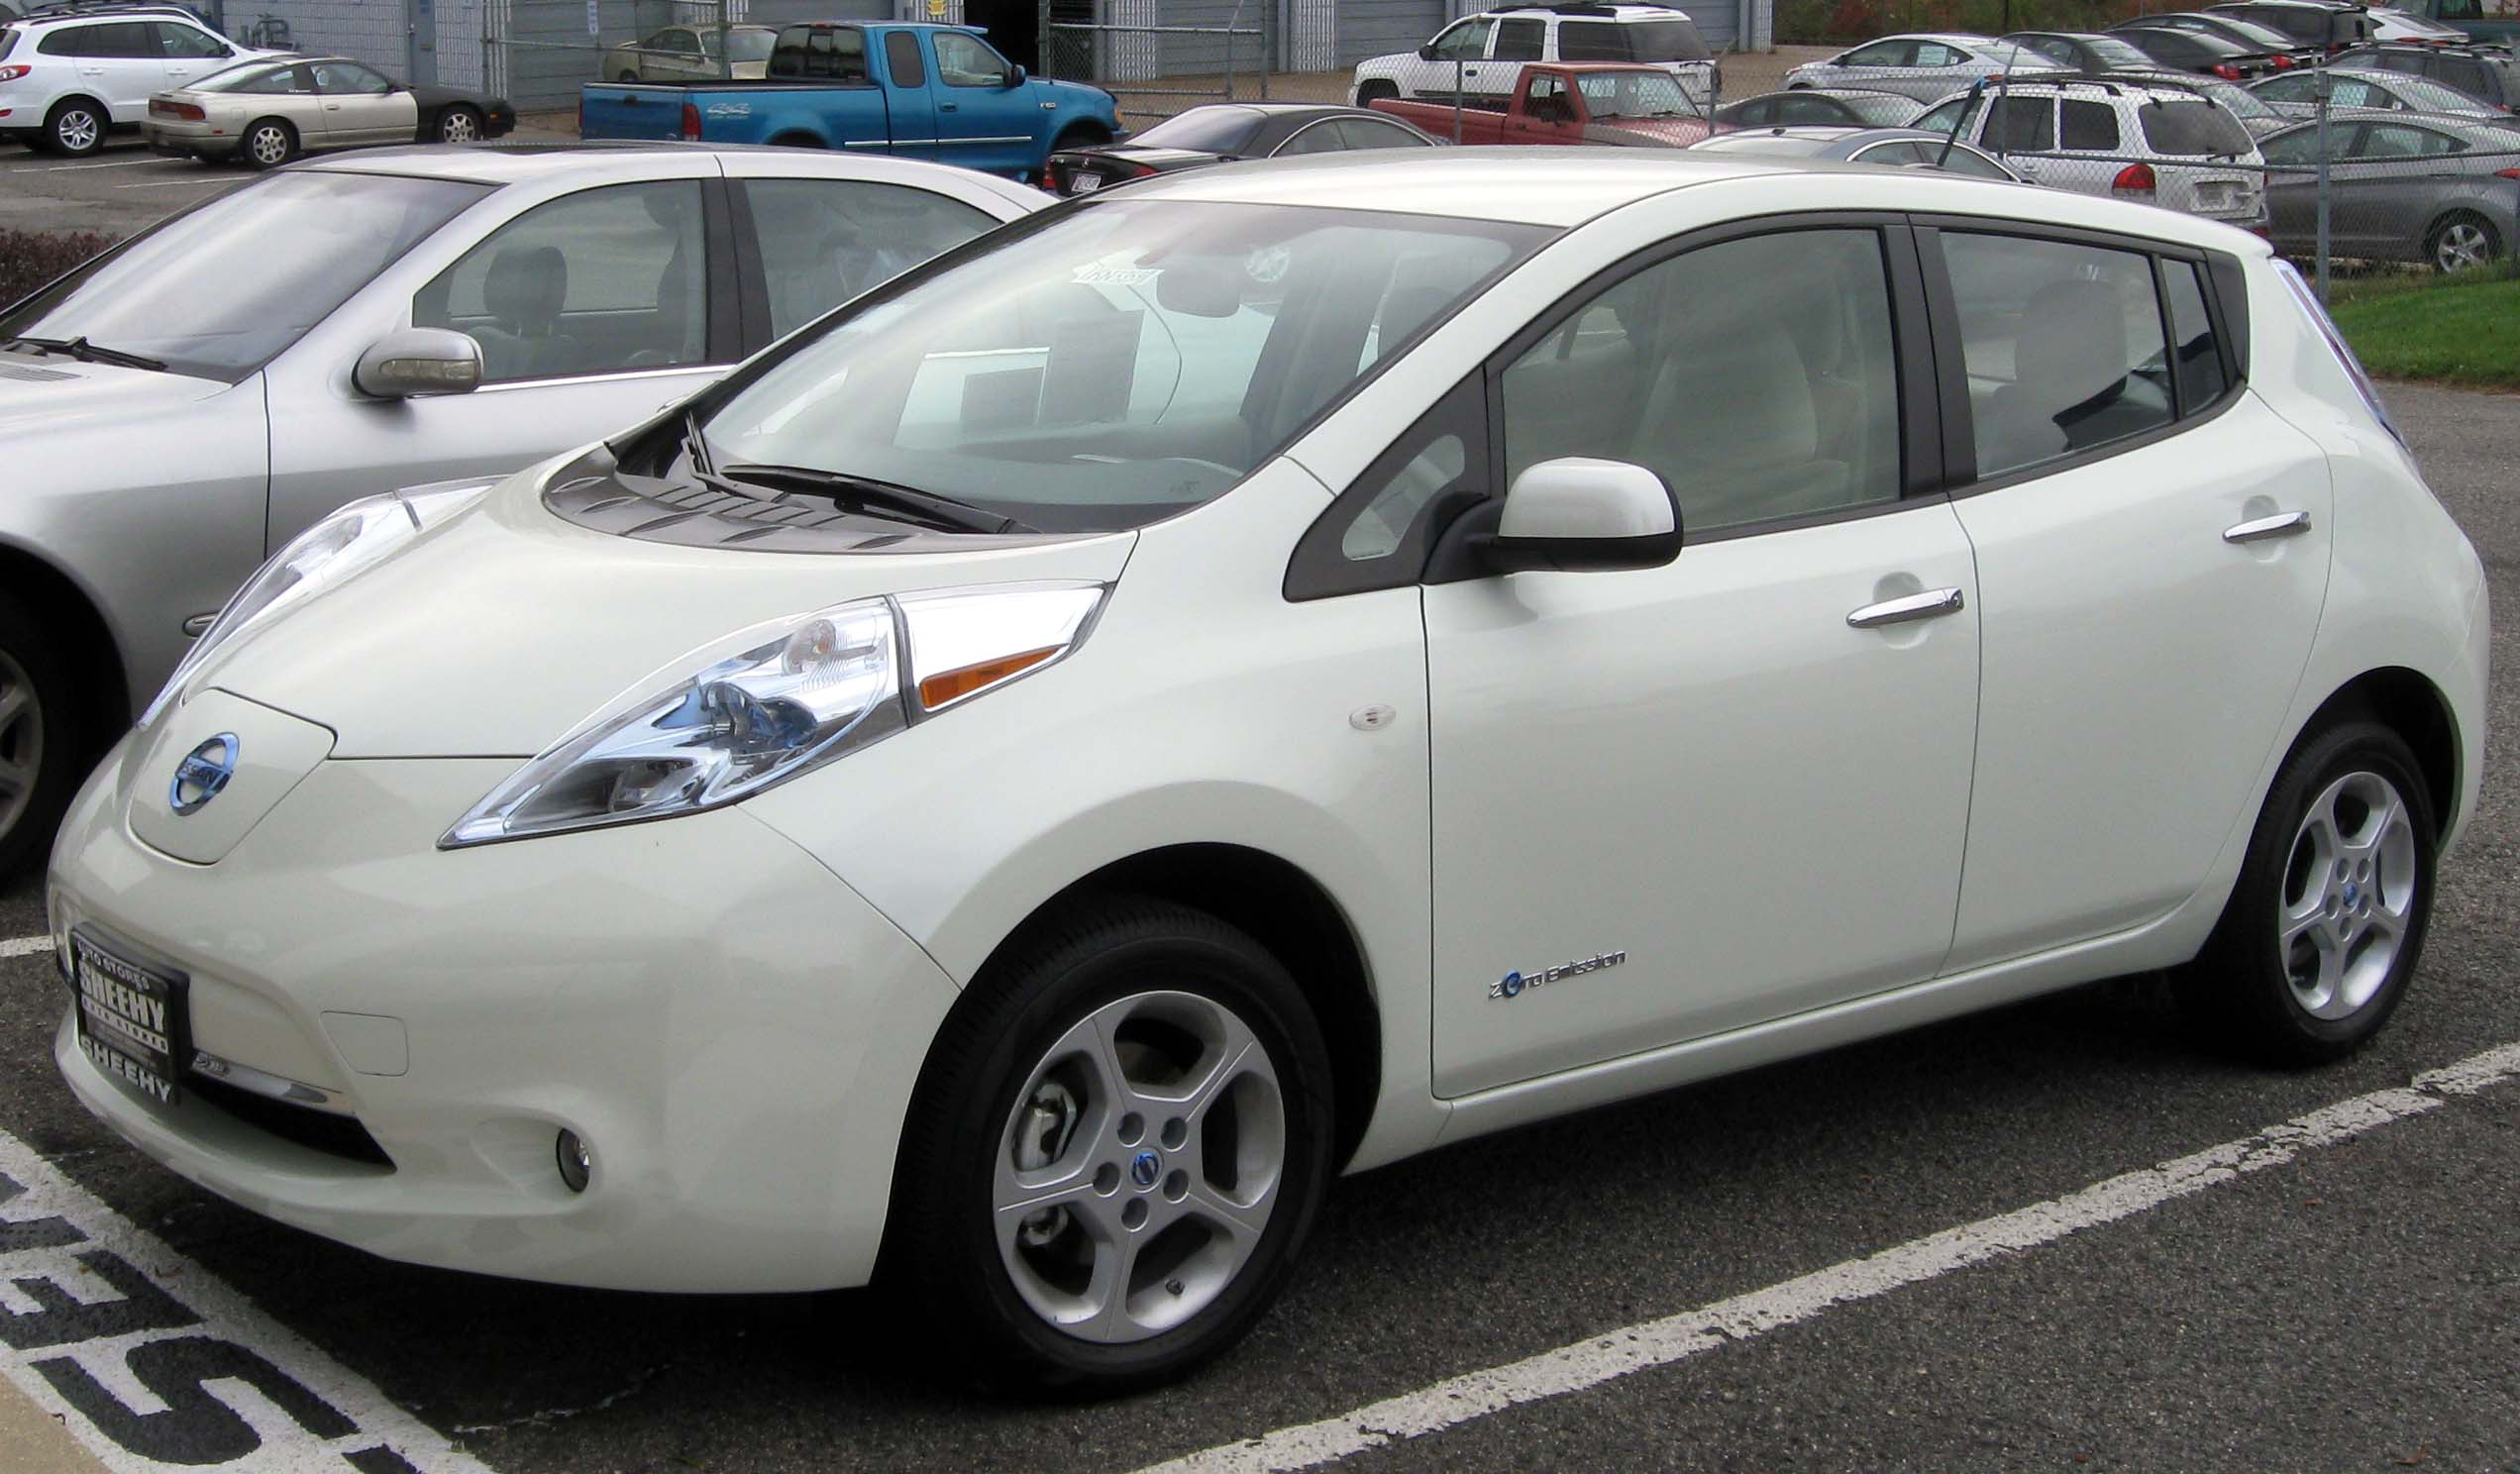 Why Are Electric Cars Ugly?